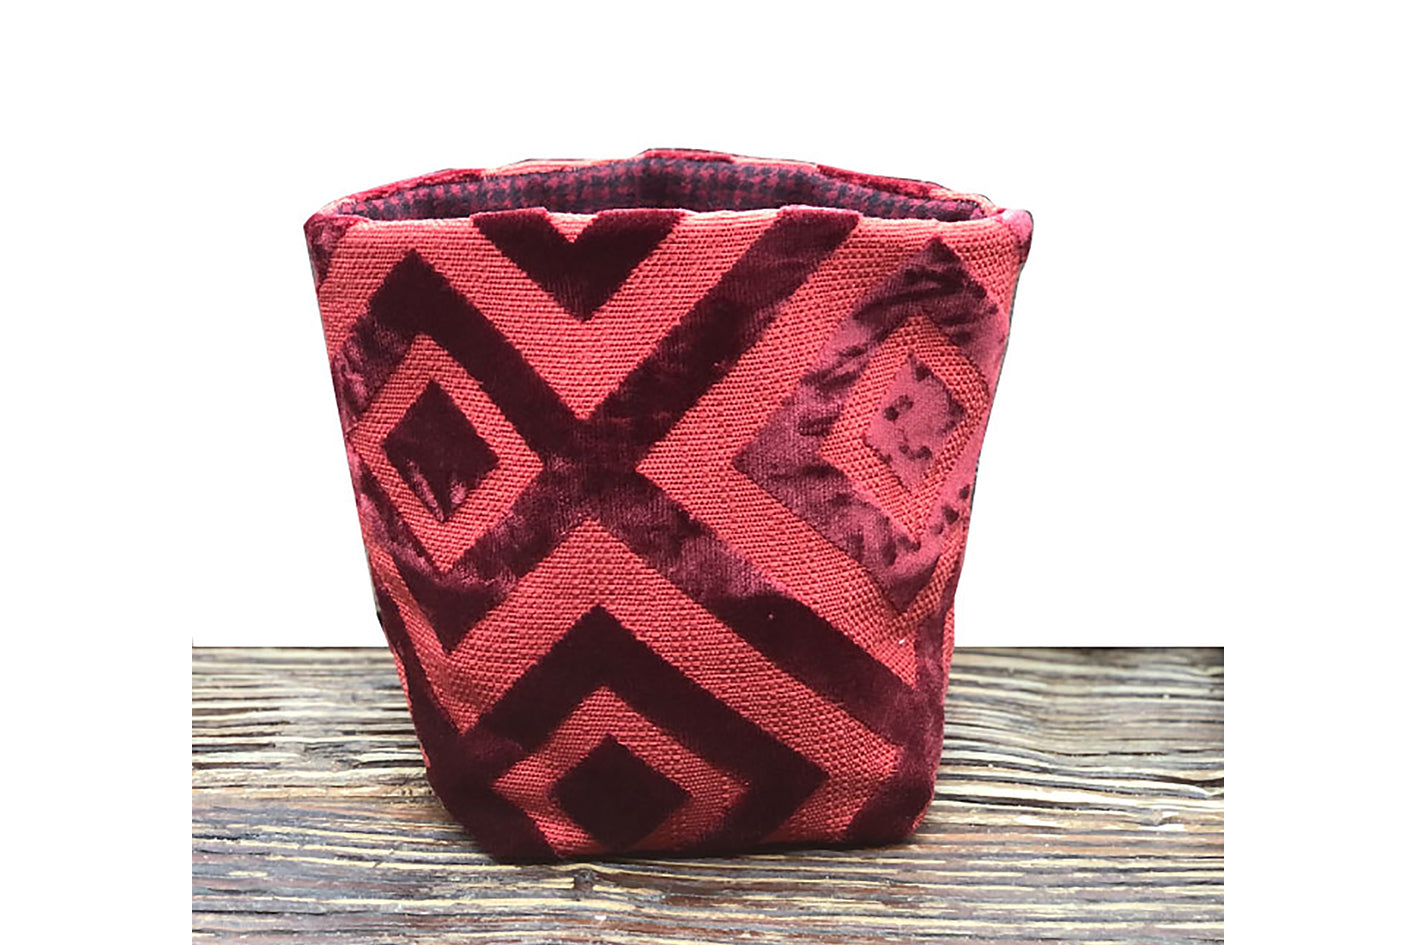 Handmade Fabric Basket - Red Diamonds